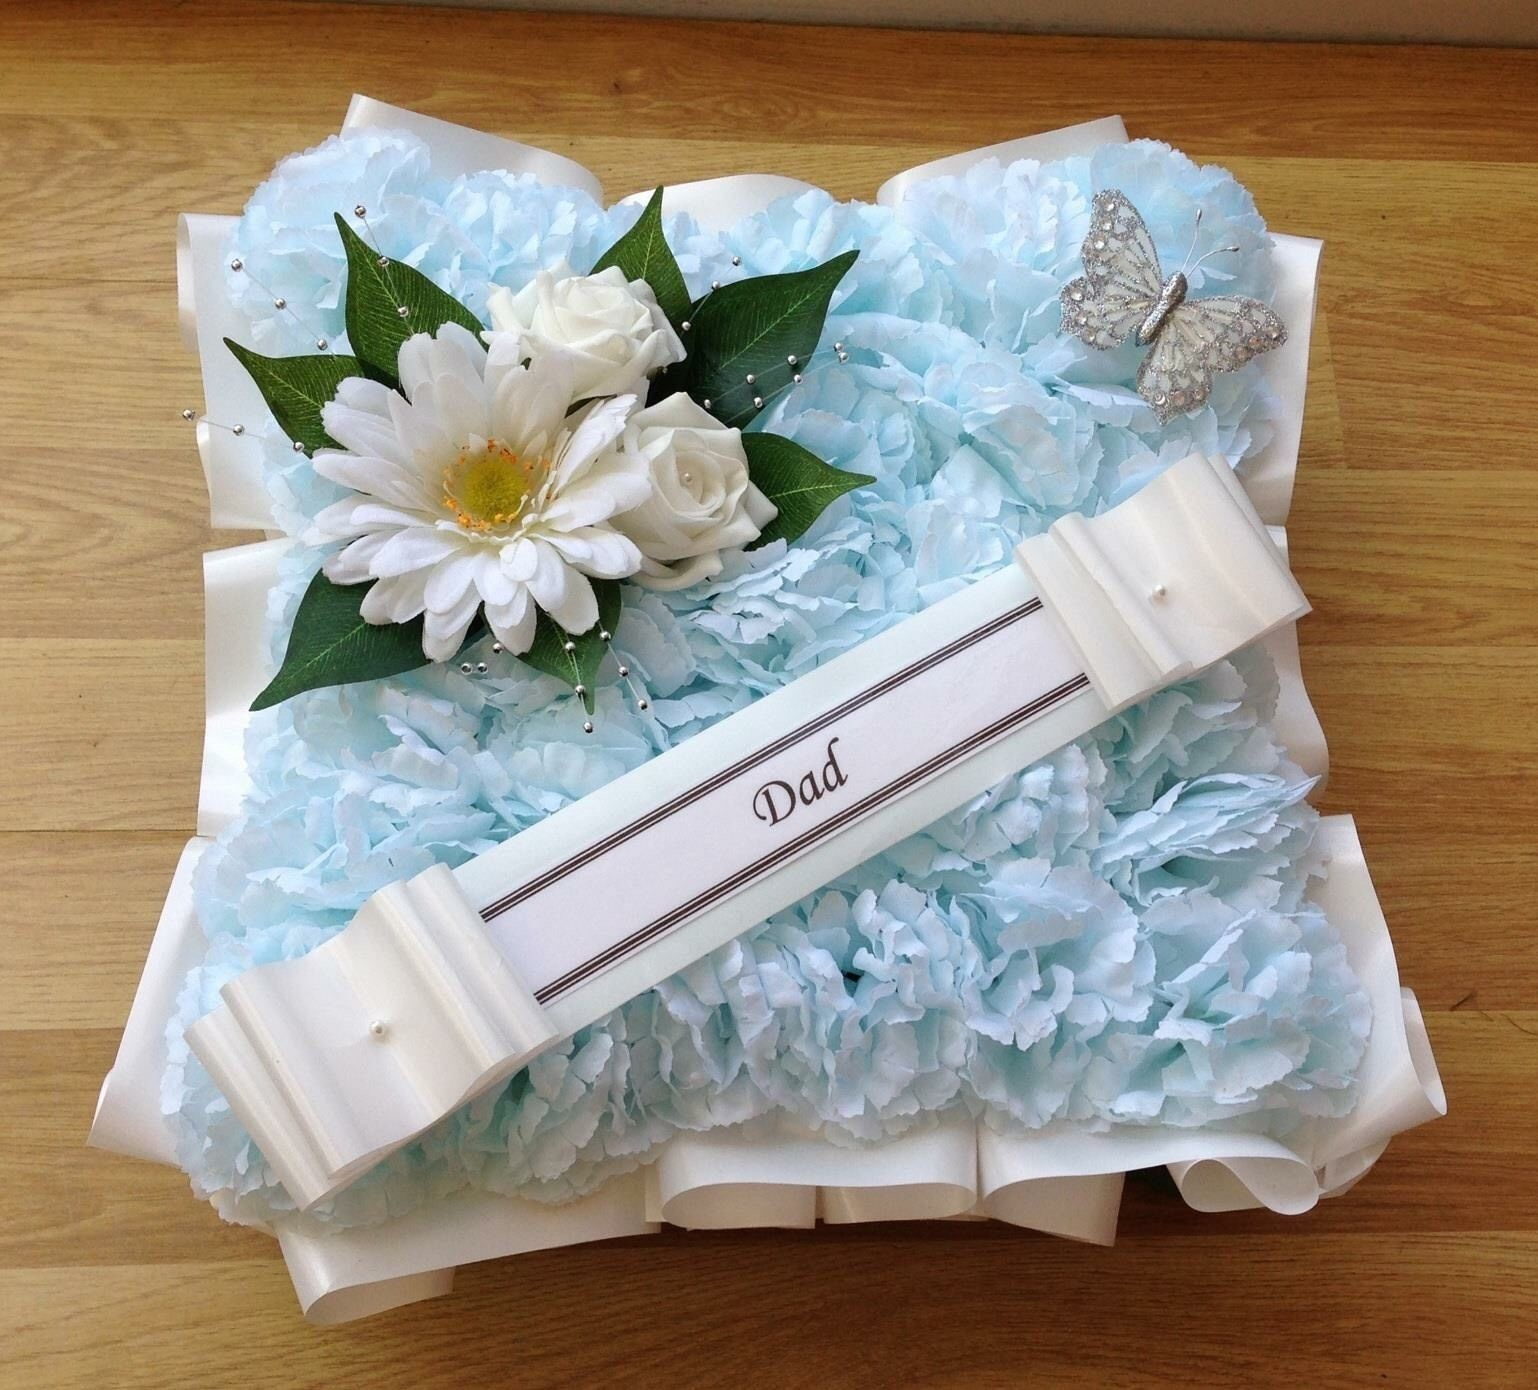 Artificial Funeral Flowers Silk Wreath Memorial Grave Funeral White